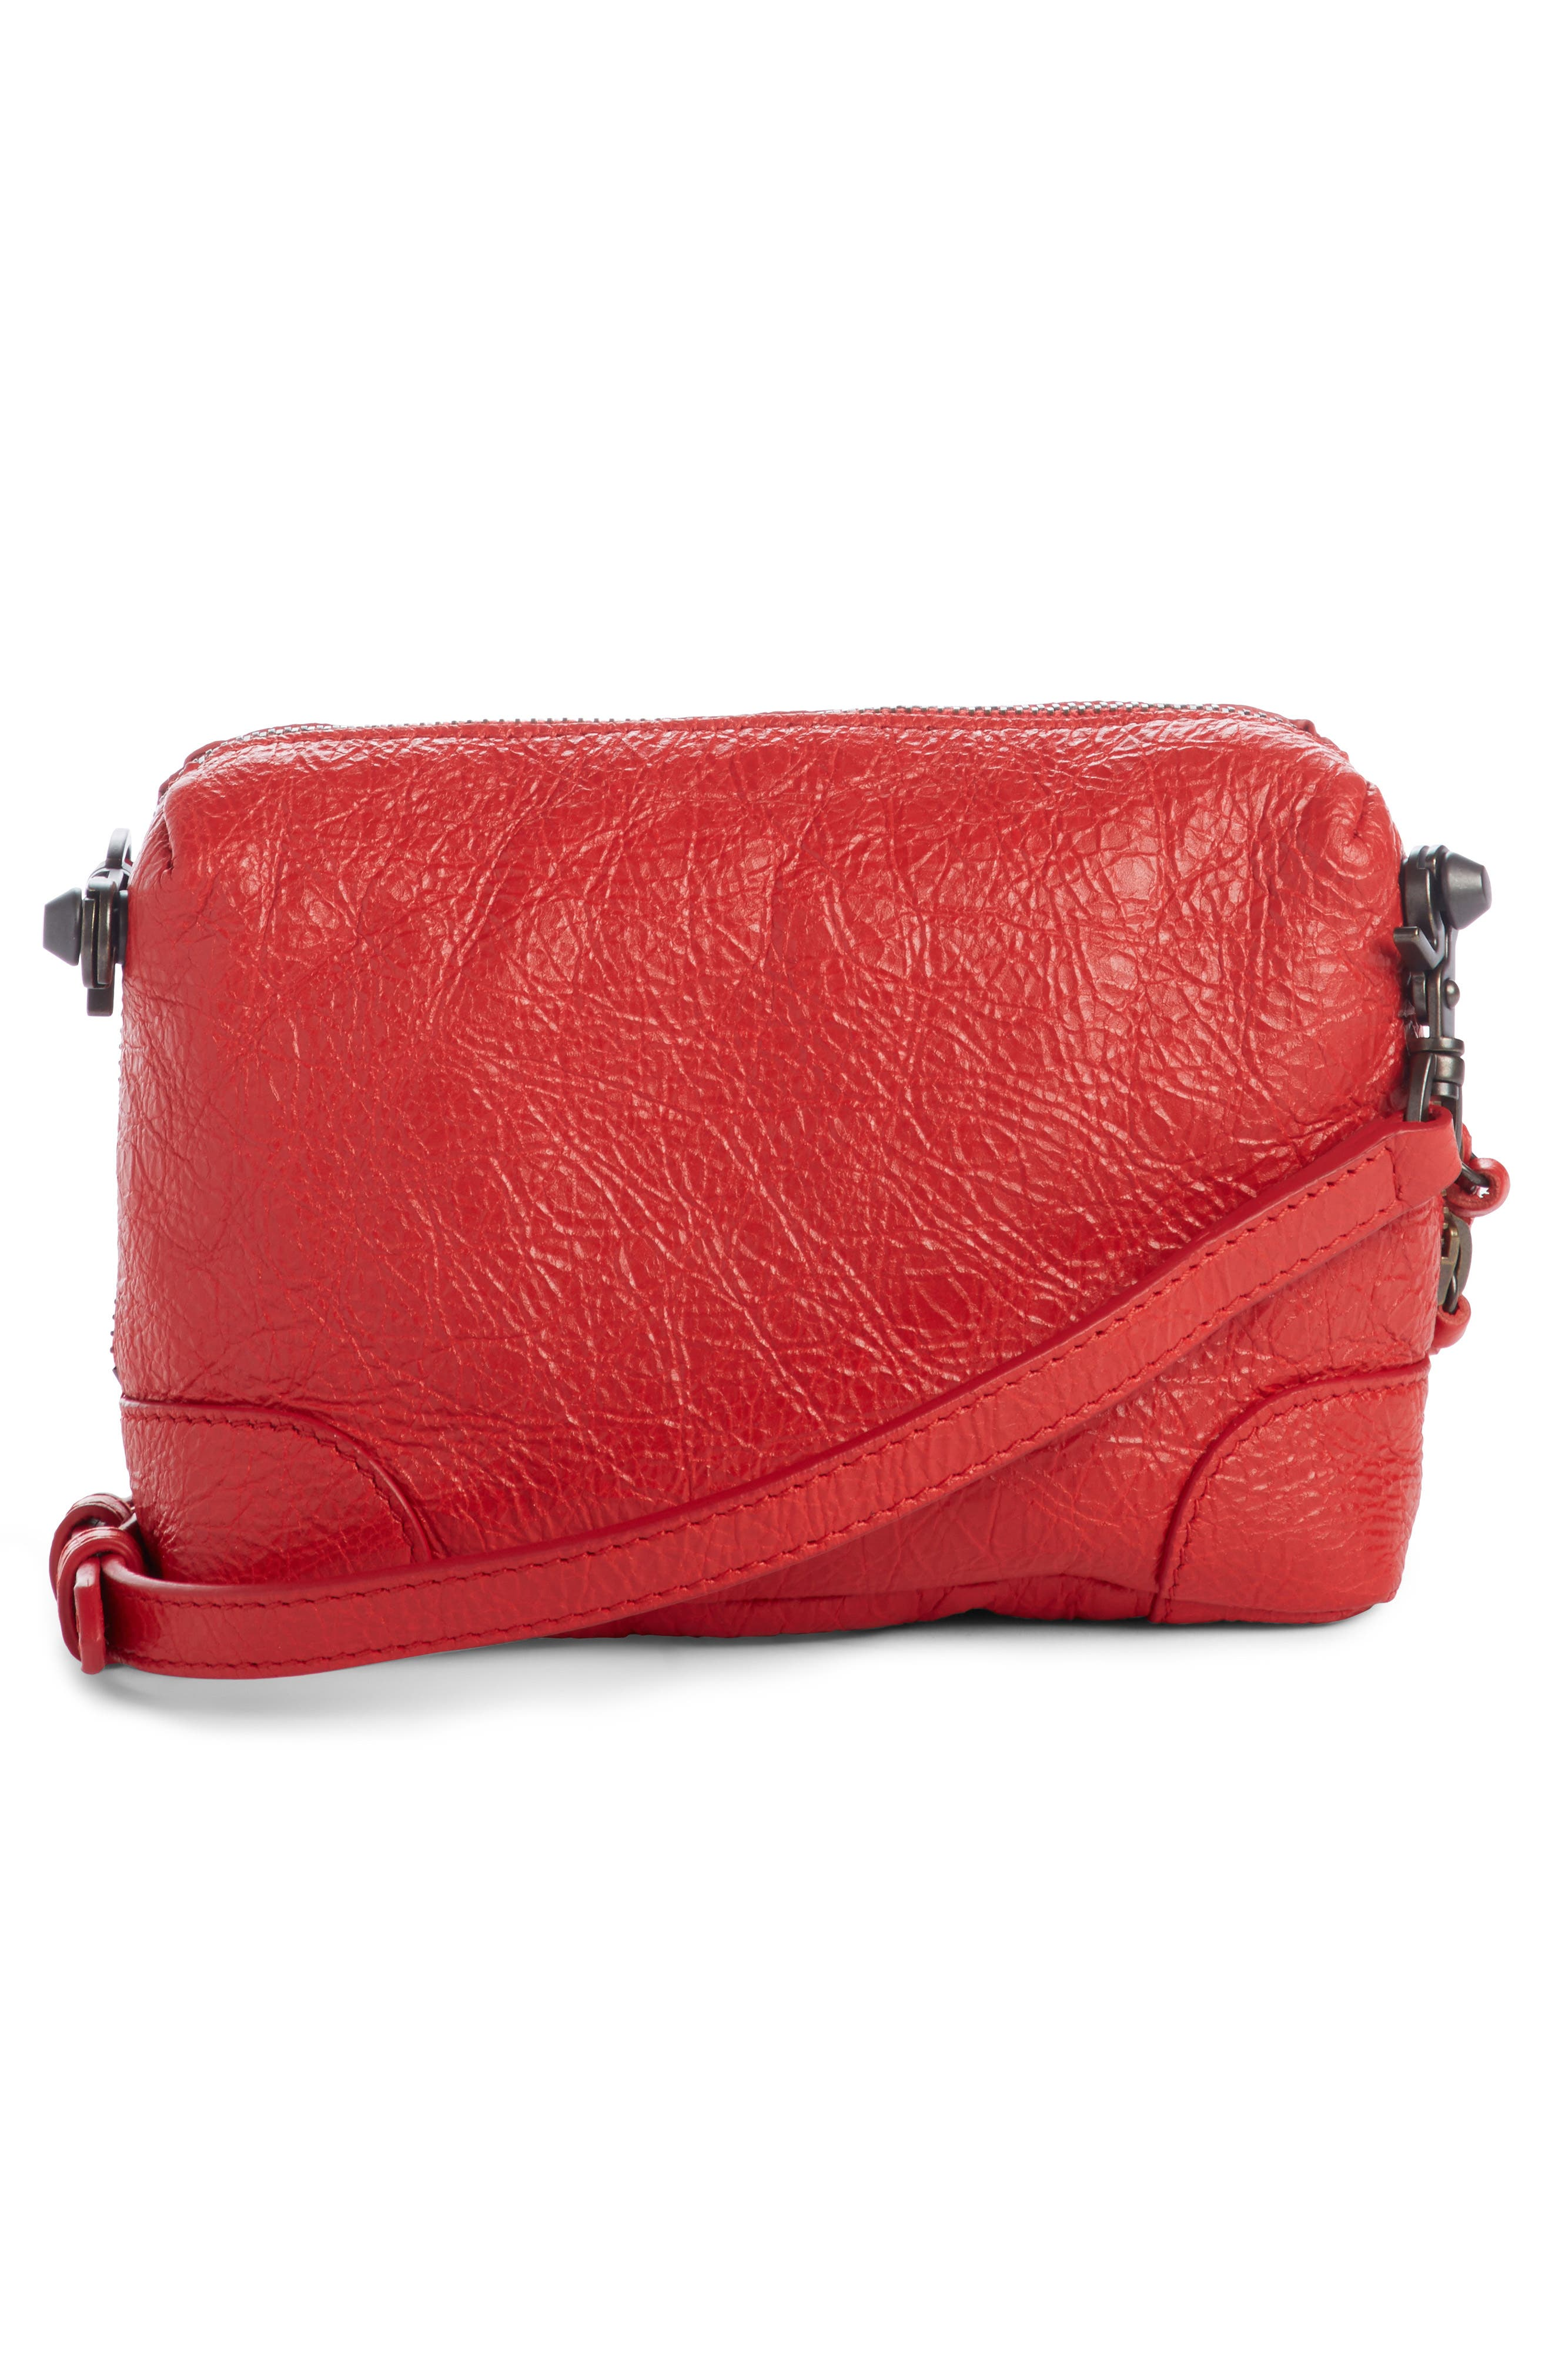 Extra Small Classic Reporter Leather Shoulder Bag,                             Alternate thumbnail 2, color,                             ROUGE TANGO